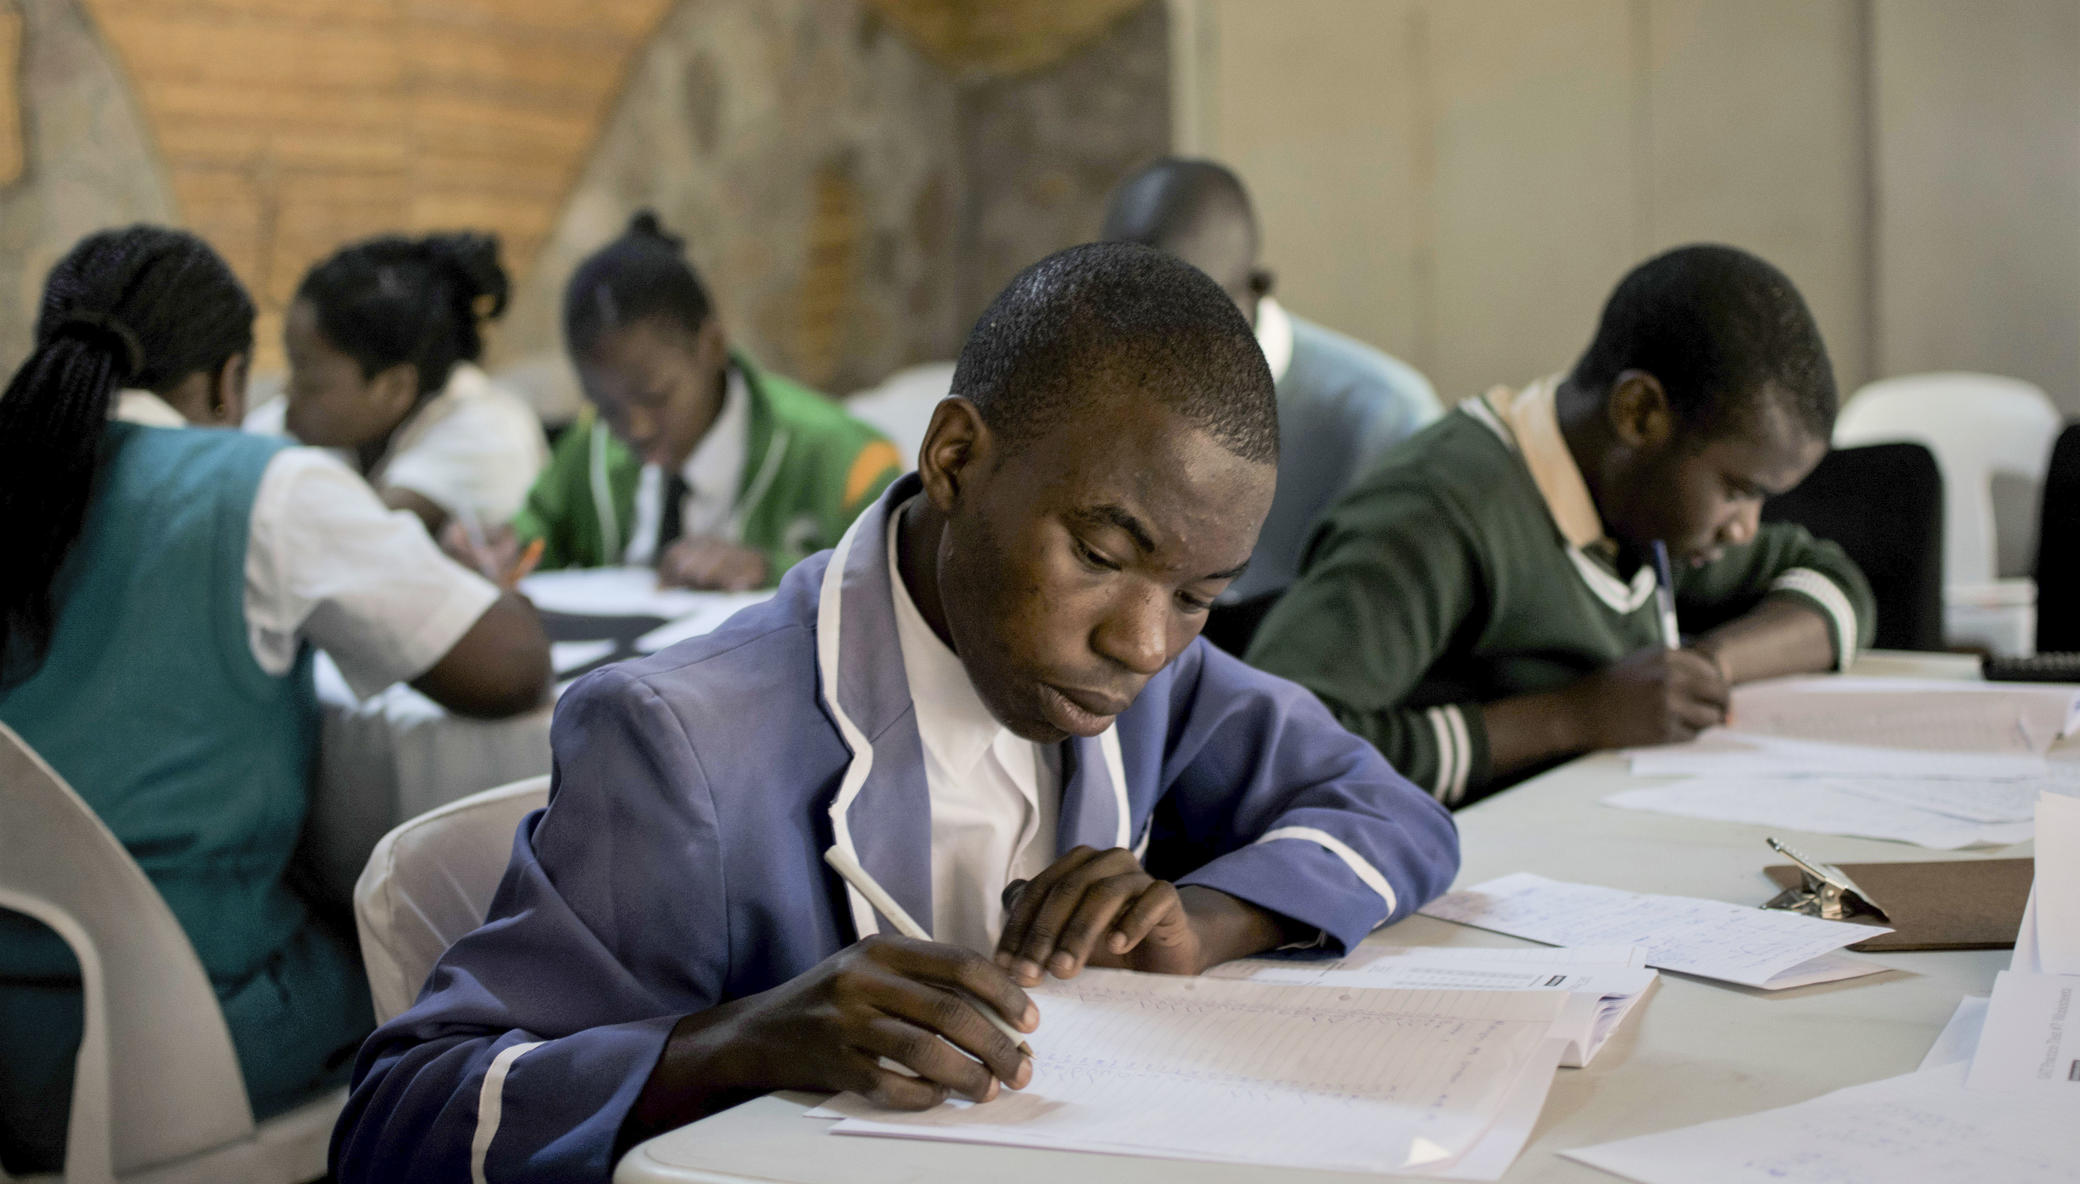 Build the USAP Community School in Zimbabwe